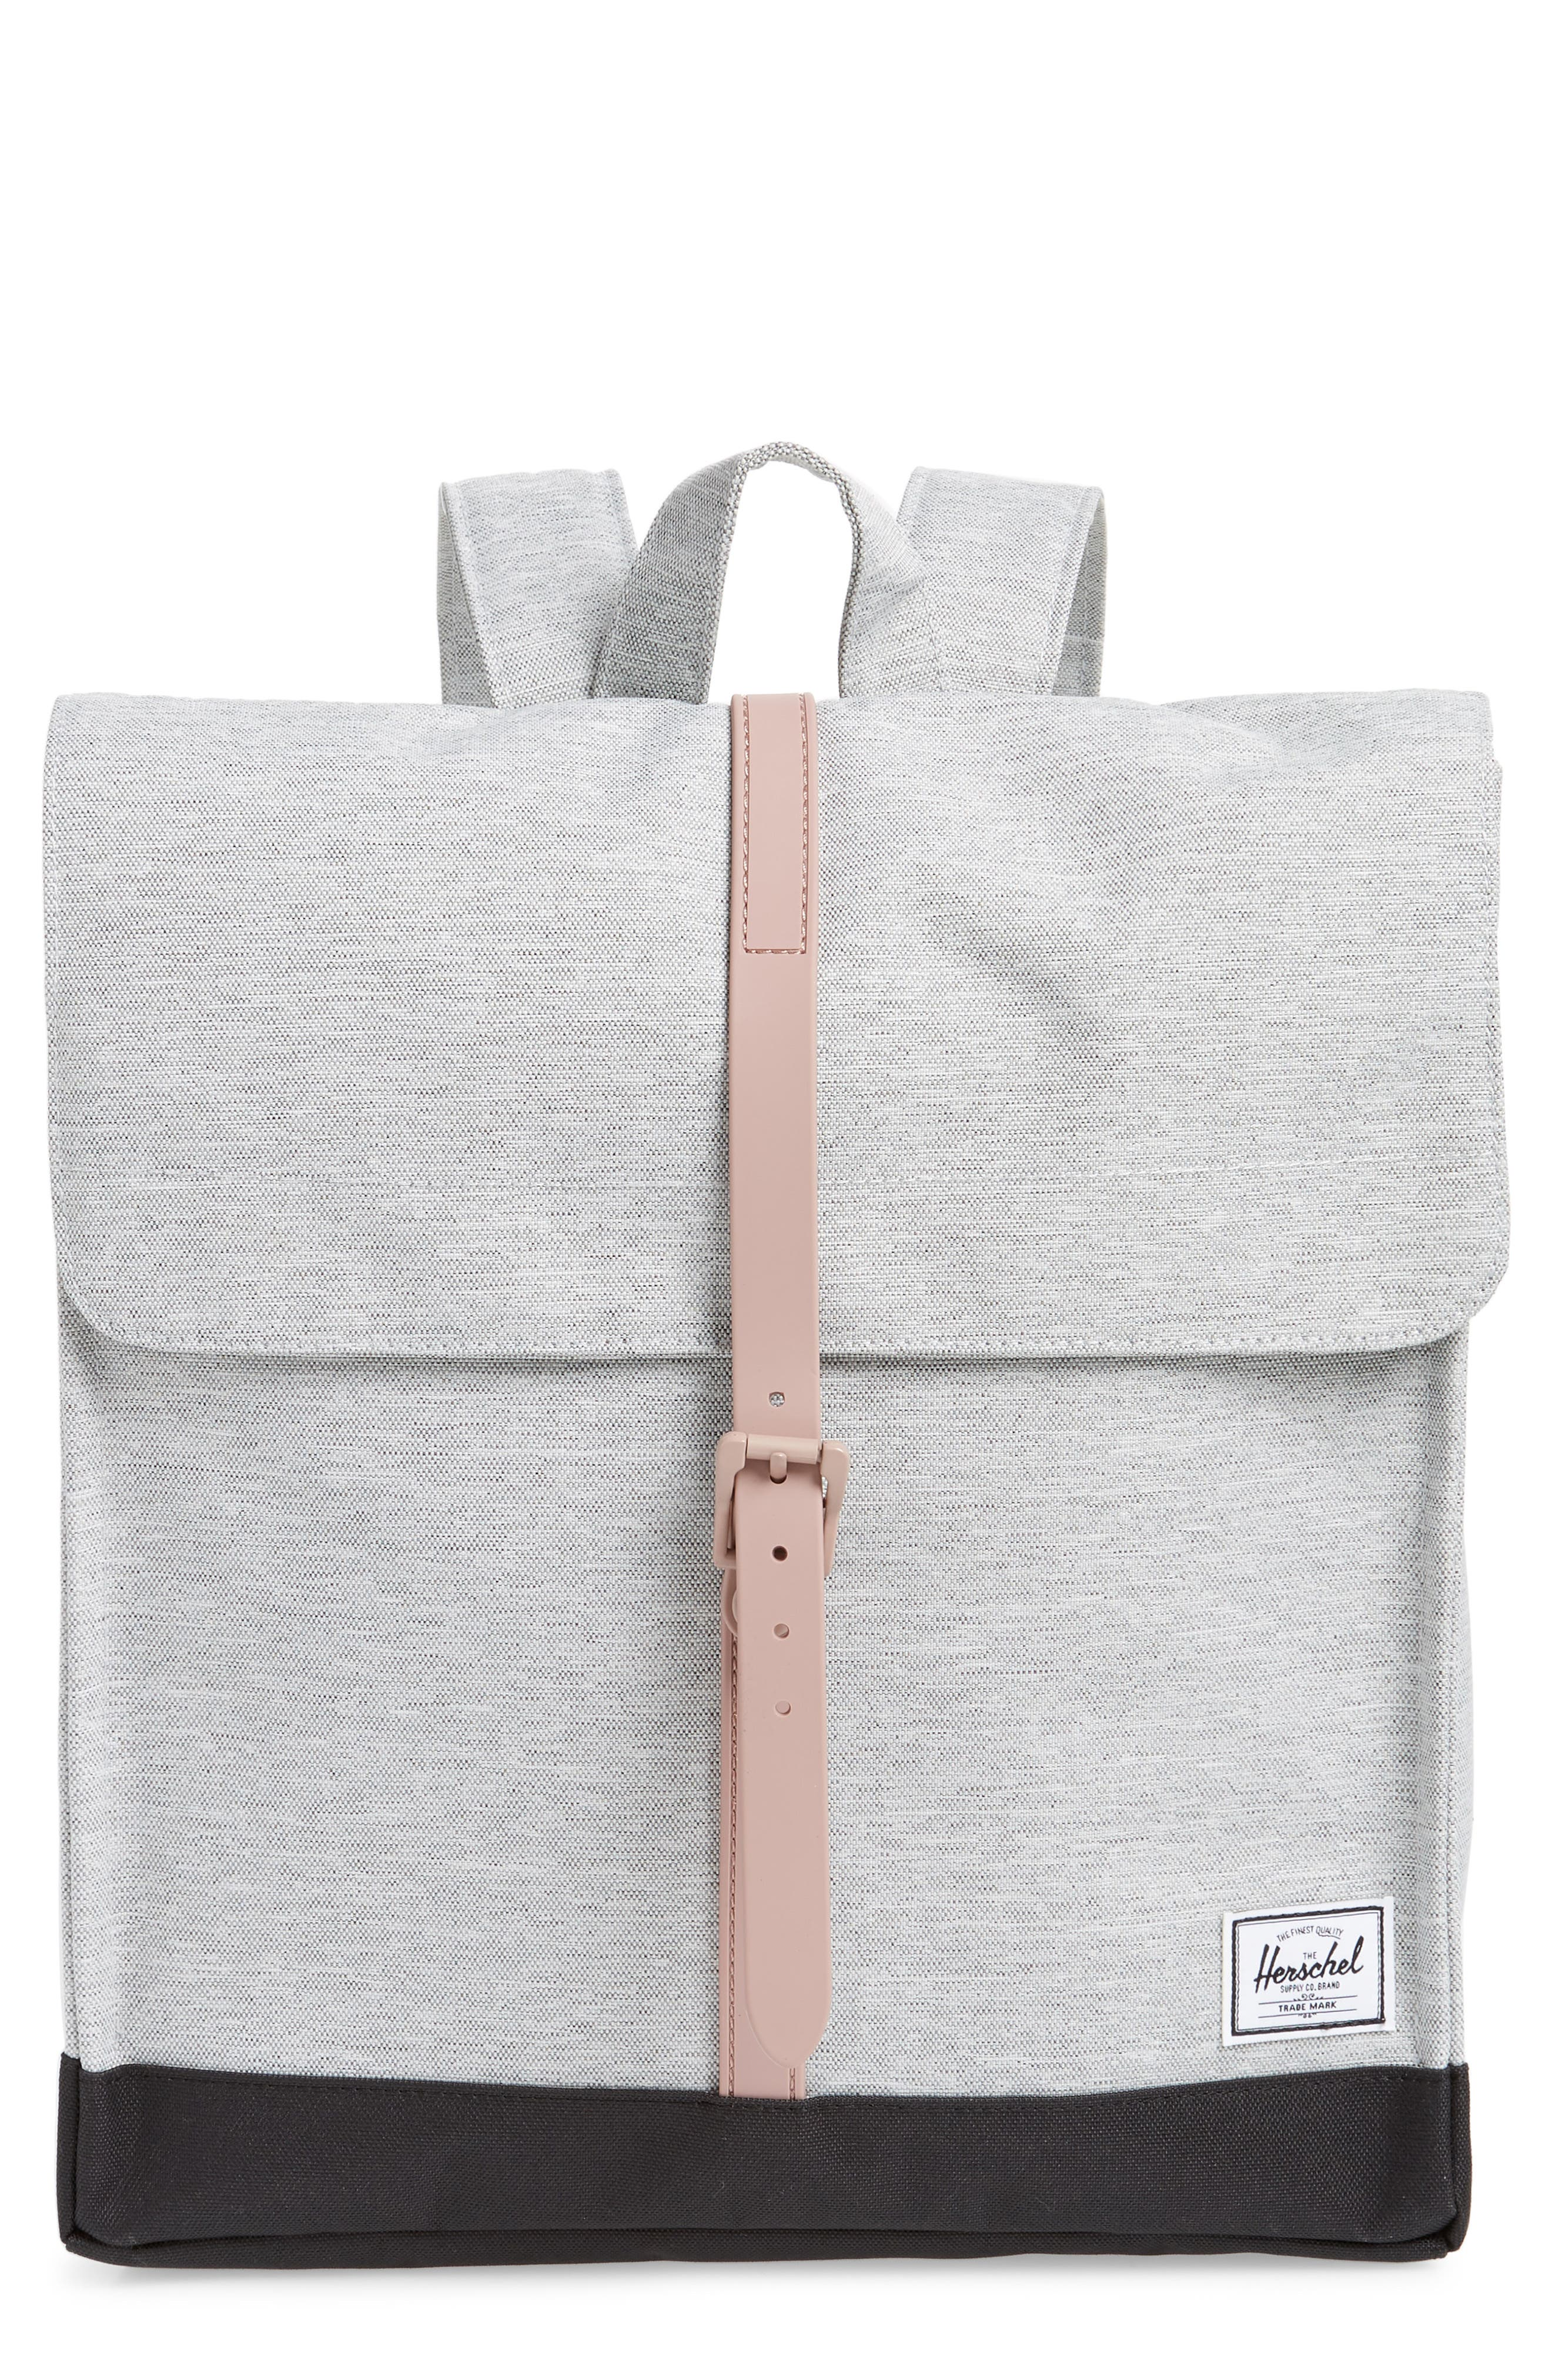 'City - Mid Volume' Backpack,                             Main thumbnail 1, color,                             LIGHT GREY/ ASH ROSE/ BLACK